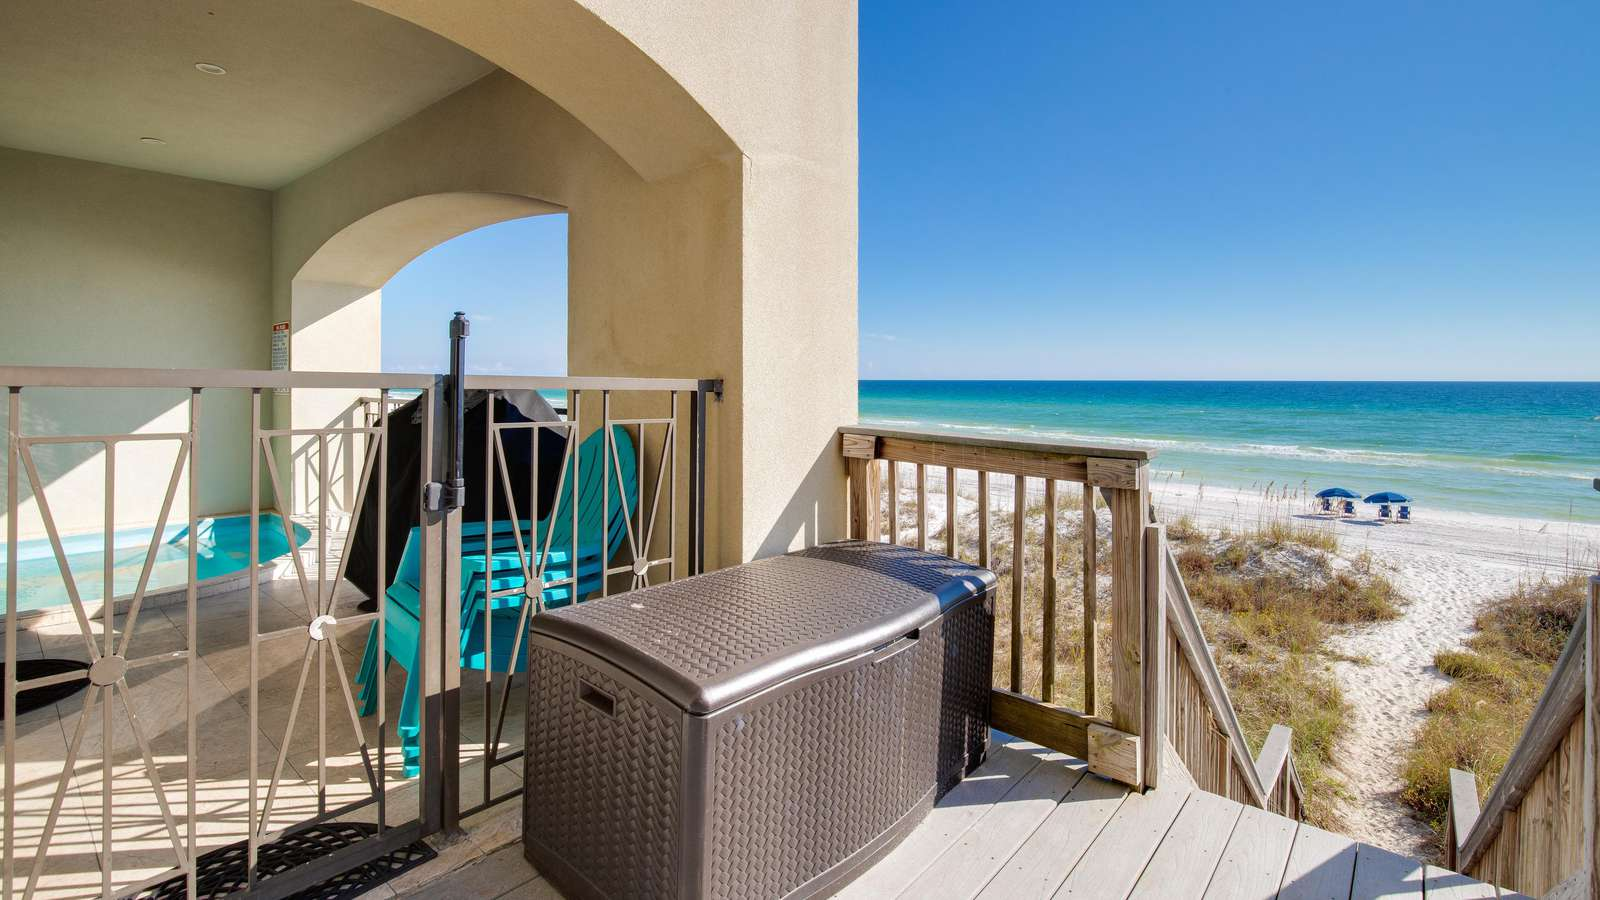 Enjoy grilling your favorite meal while relaxing in the beauty of the Emerald Coast!